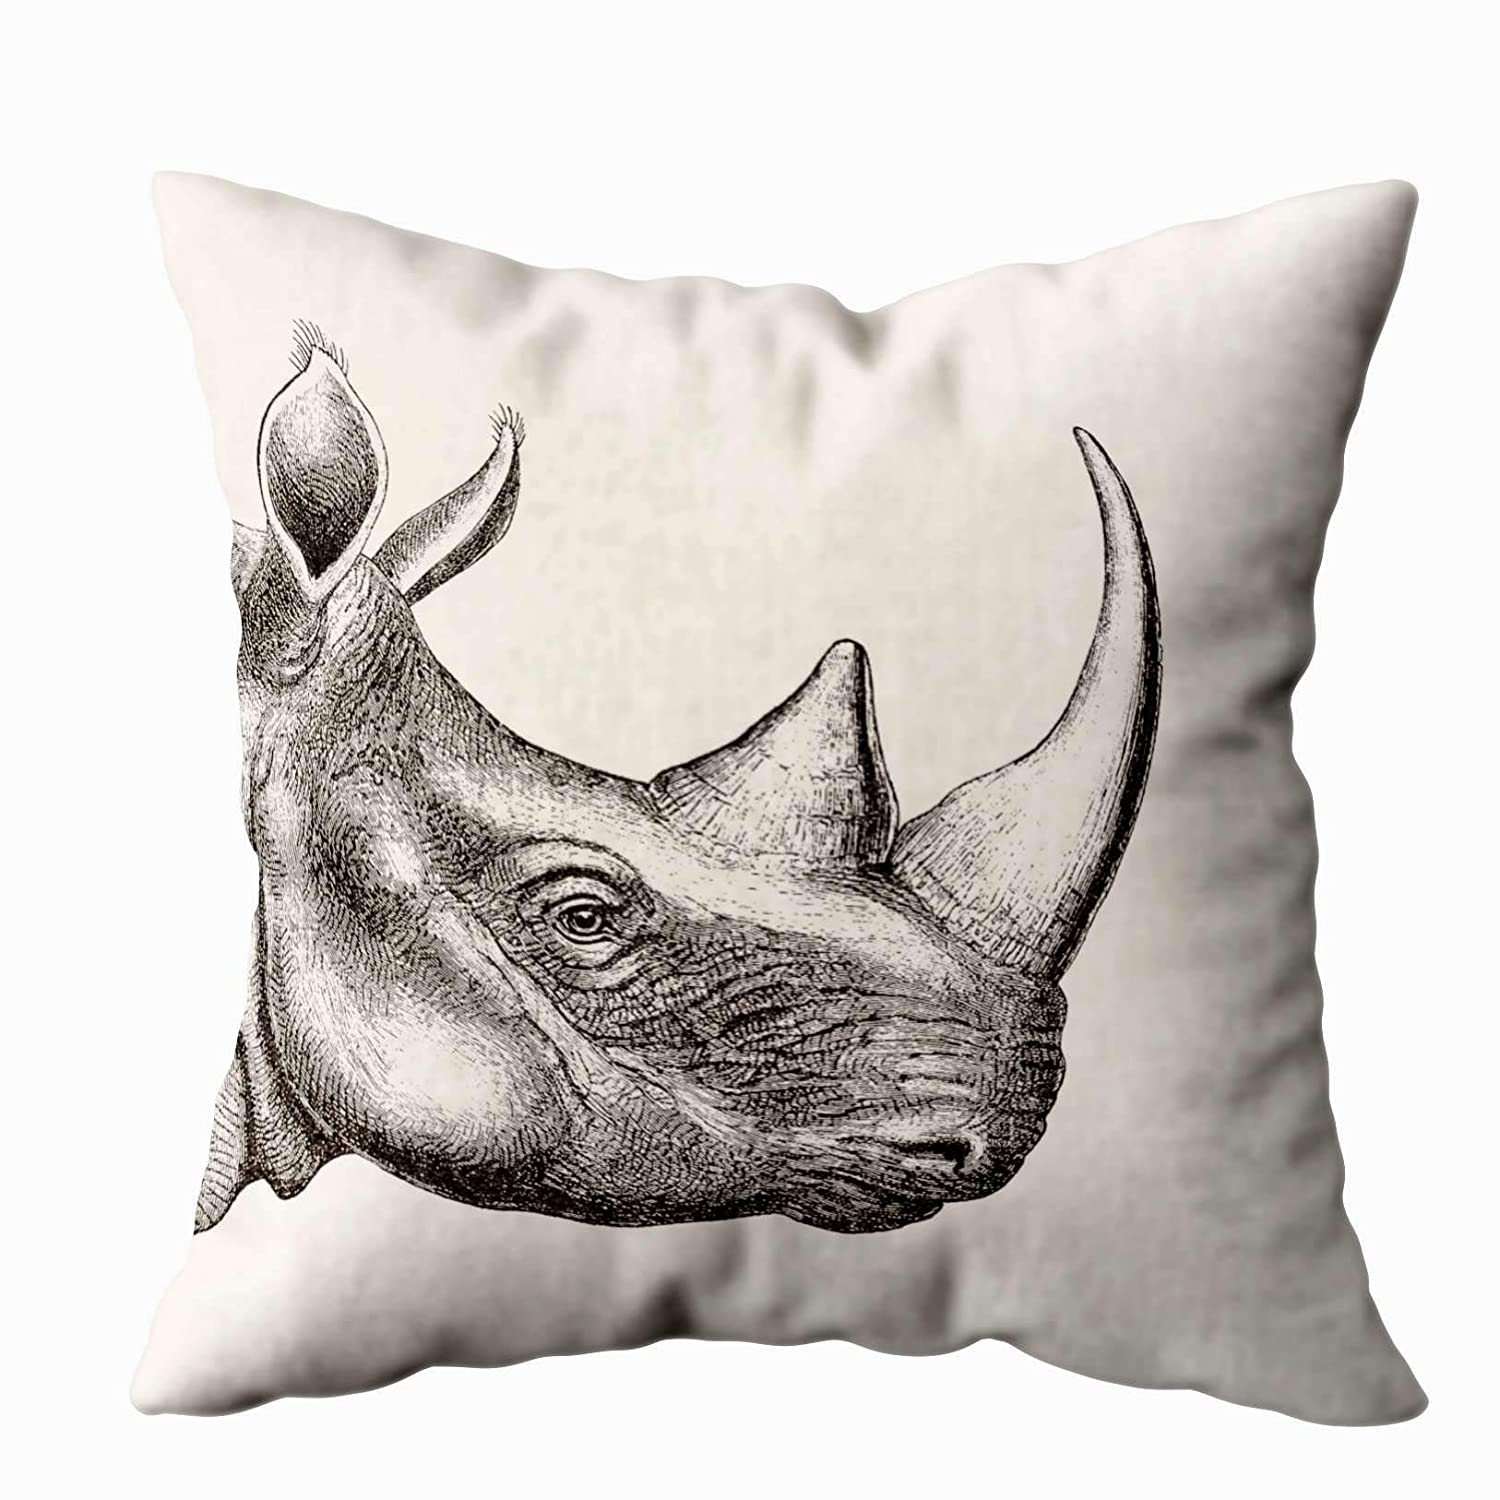 Shorping Zippered Pillow Covers Pillowcases 20X30 Inch Vintage Rhino Illustration Decorative Throw Pillow Cover,Pillow Cases Cushion Cover for Home Sofa Bedding Bed Car Seats Decor